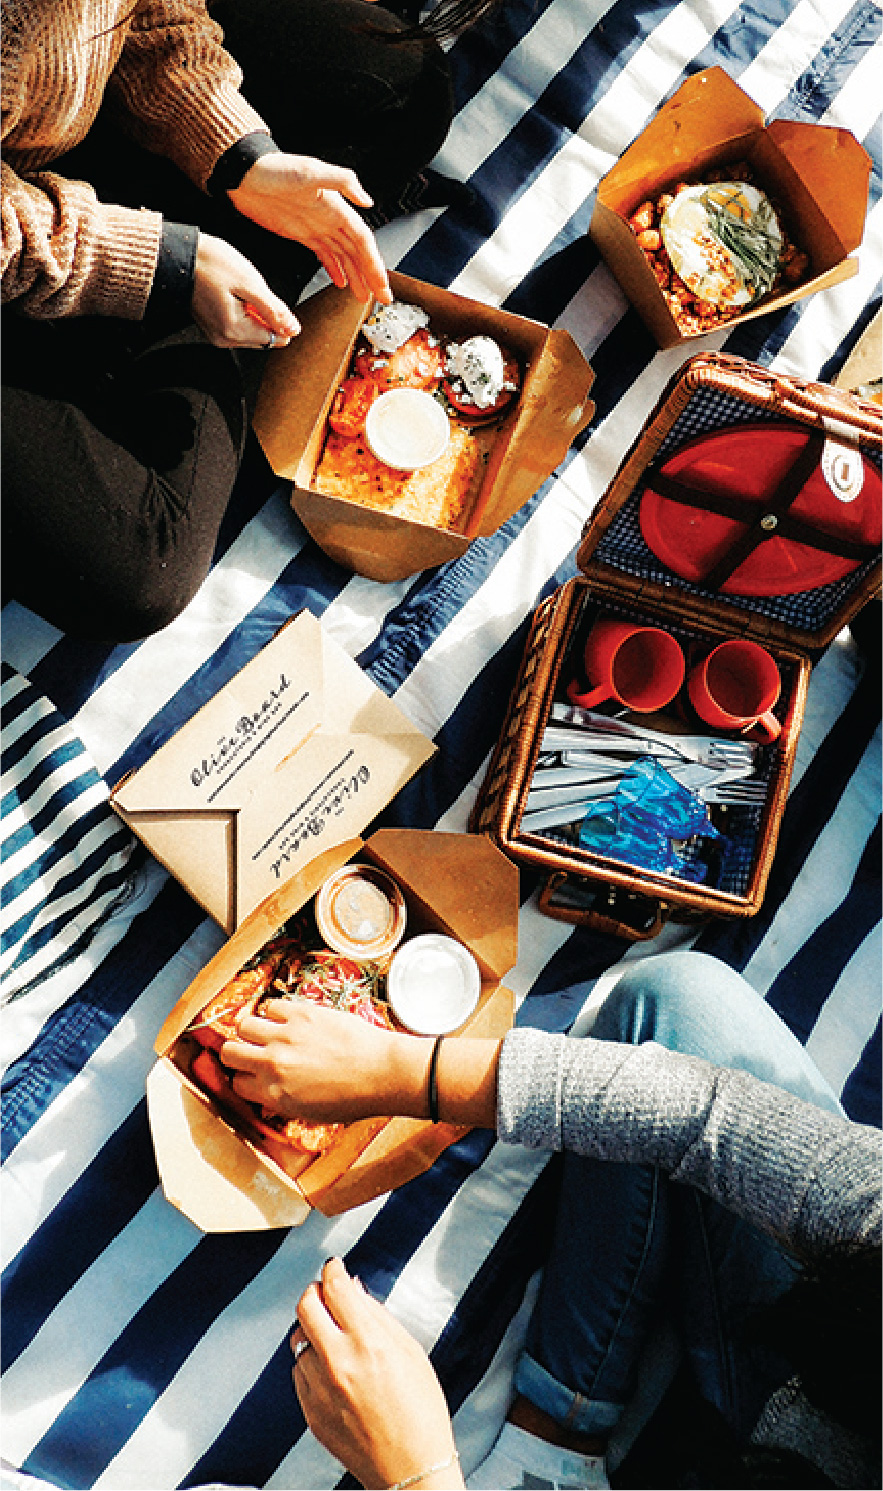 Picnic with takeout boxes